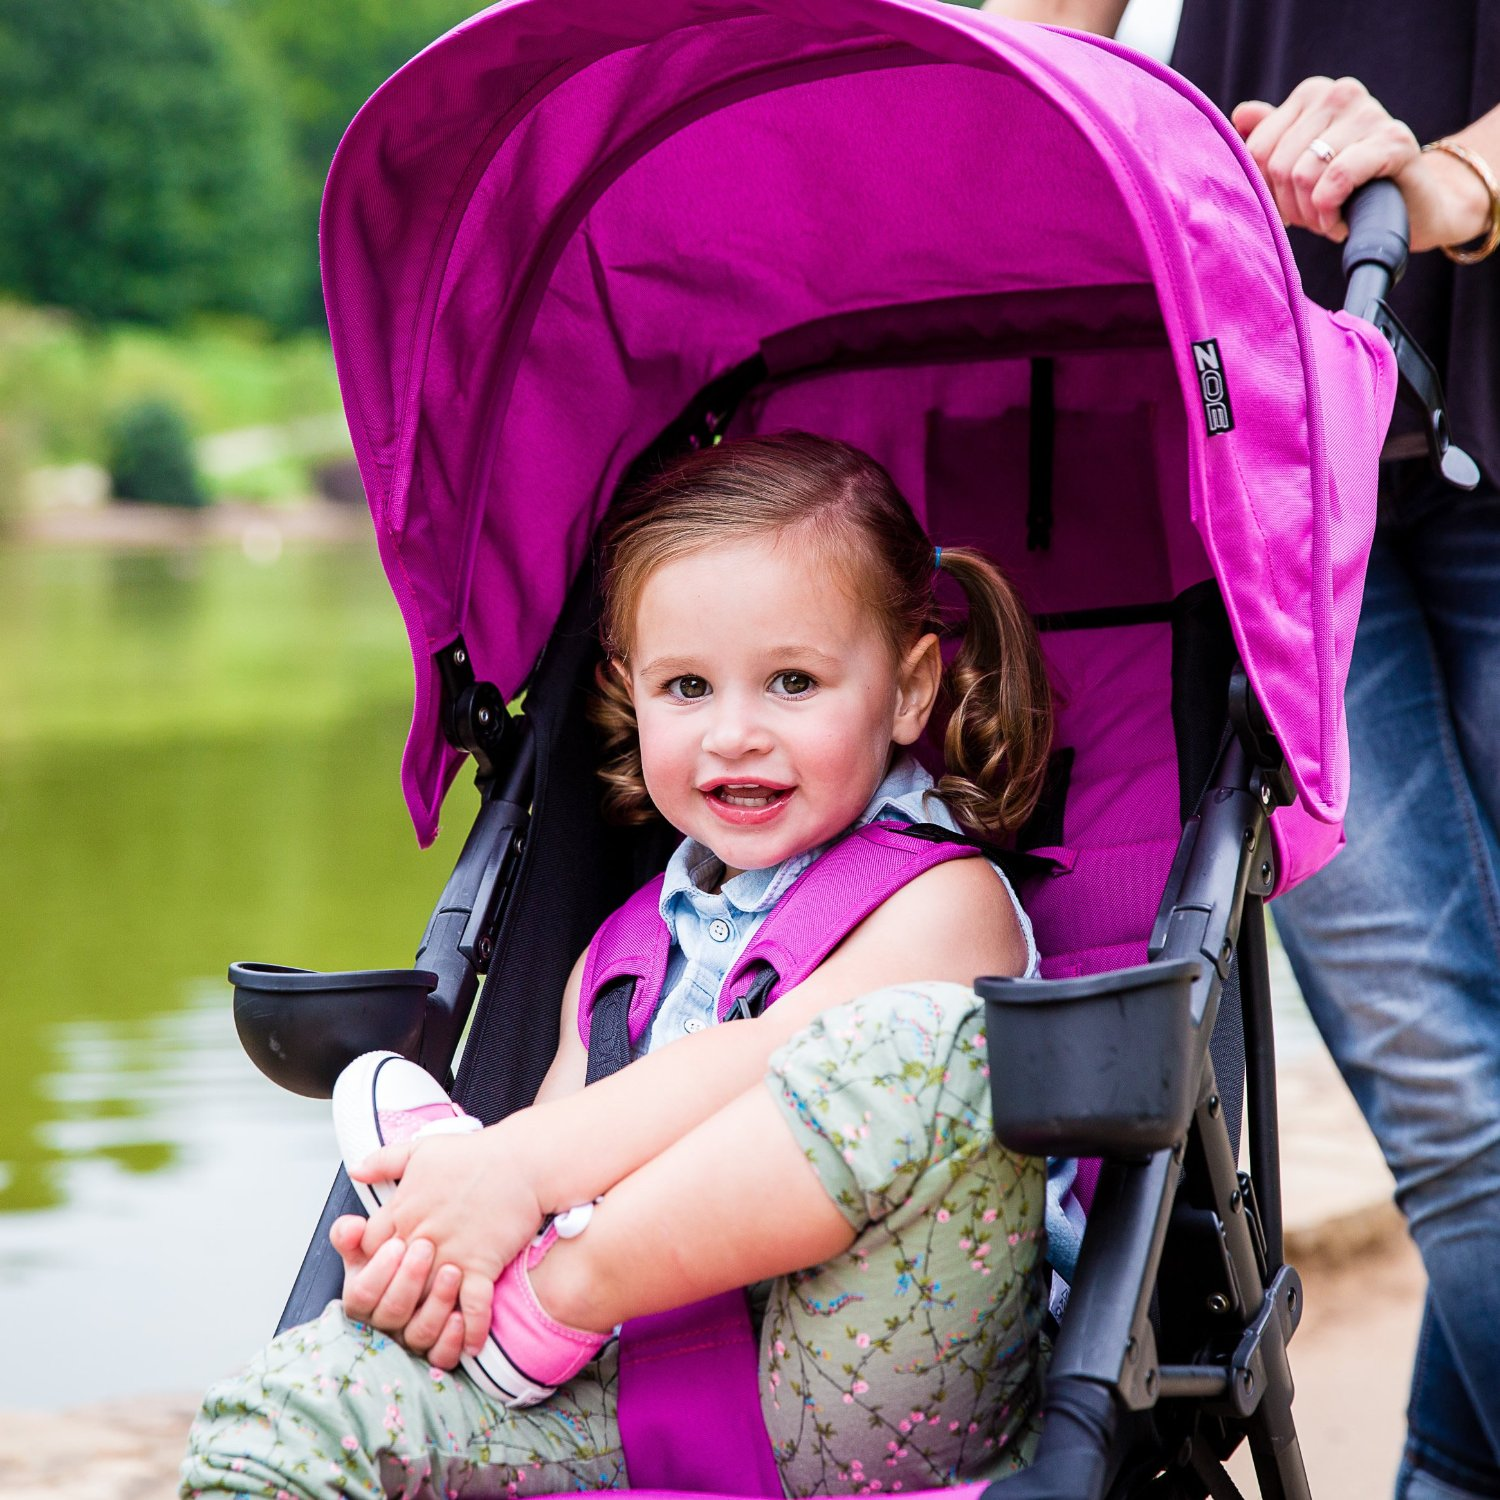 ZOE XL1 BEST Xtra Lightweight Travel & Everyday Umbrella Strollers System - best lightweight stroller